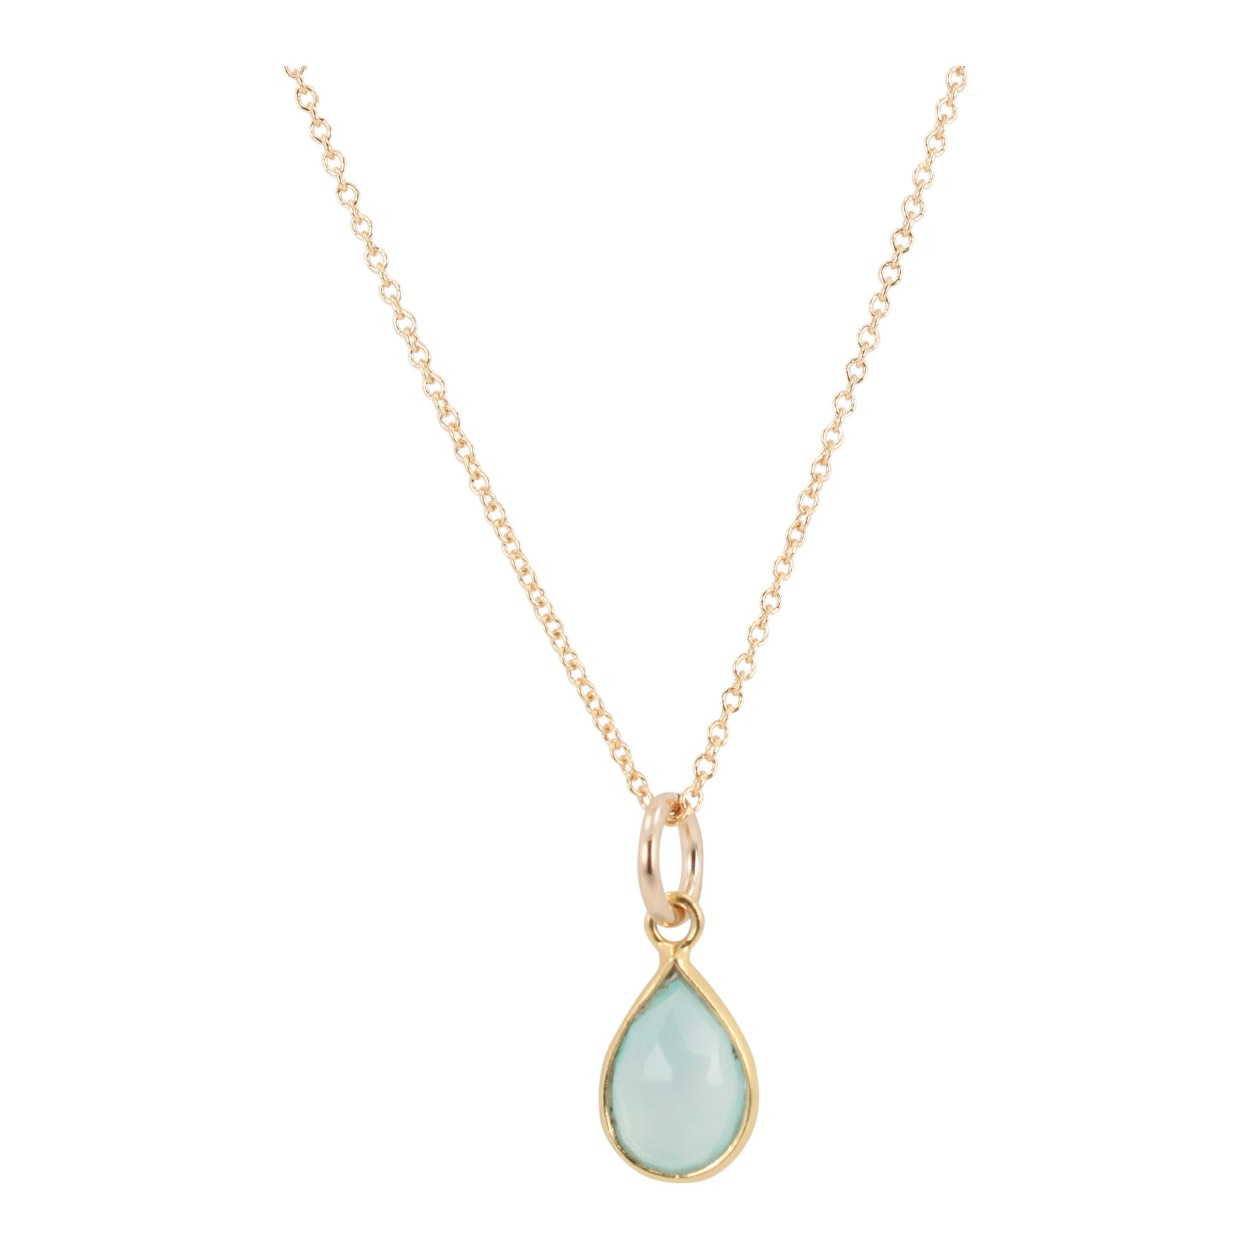 Teardrop Gemstone Necklace in Gold, #6334-yg (Aqua Chalcedony) by